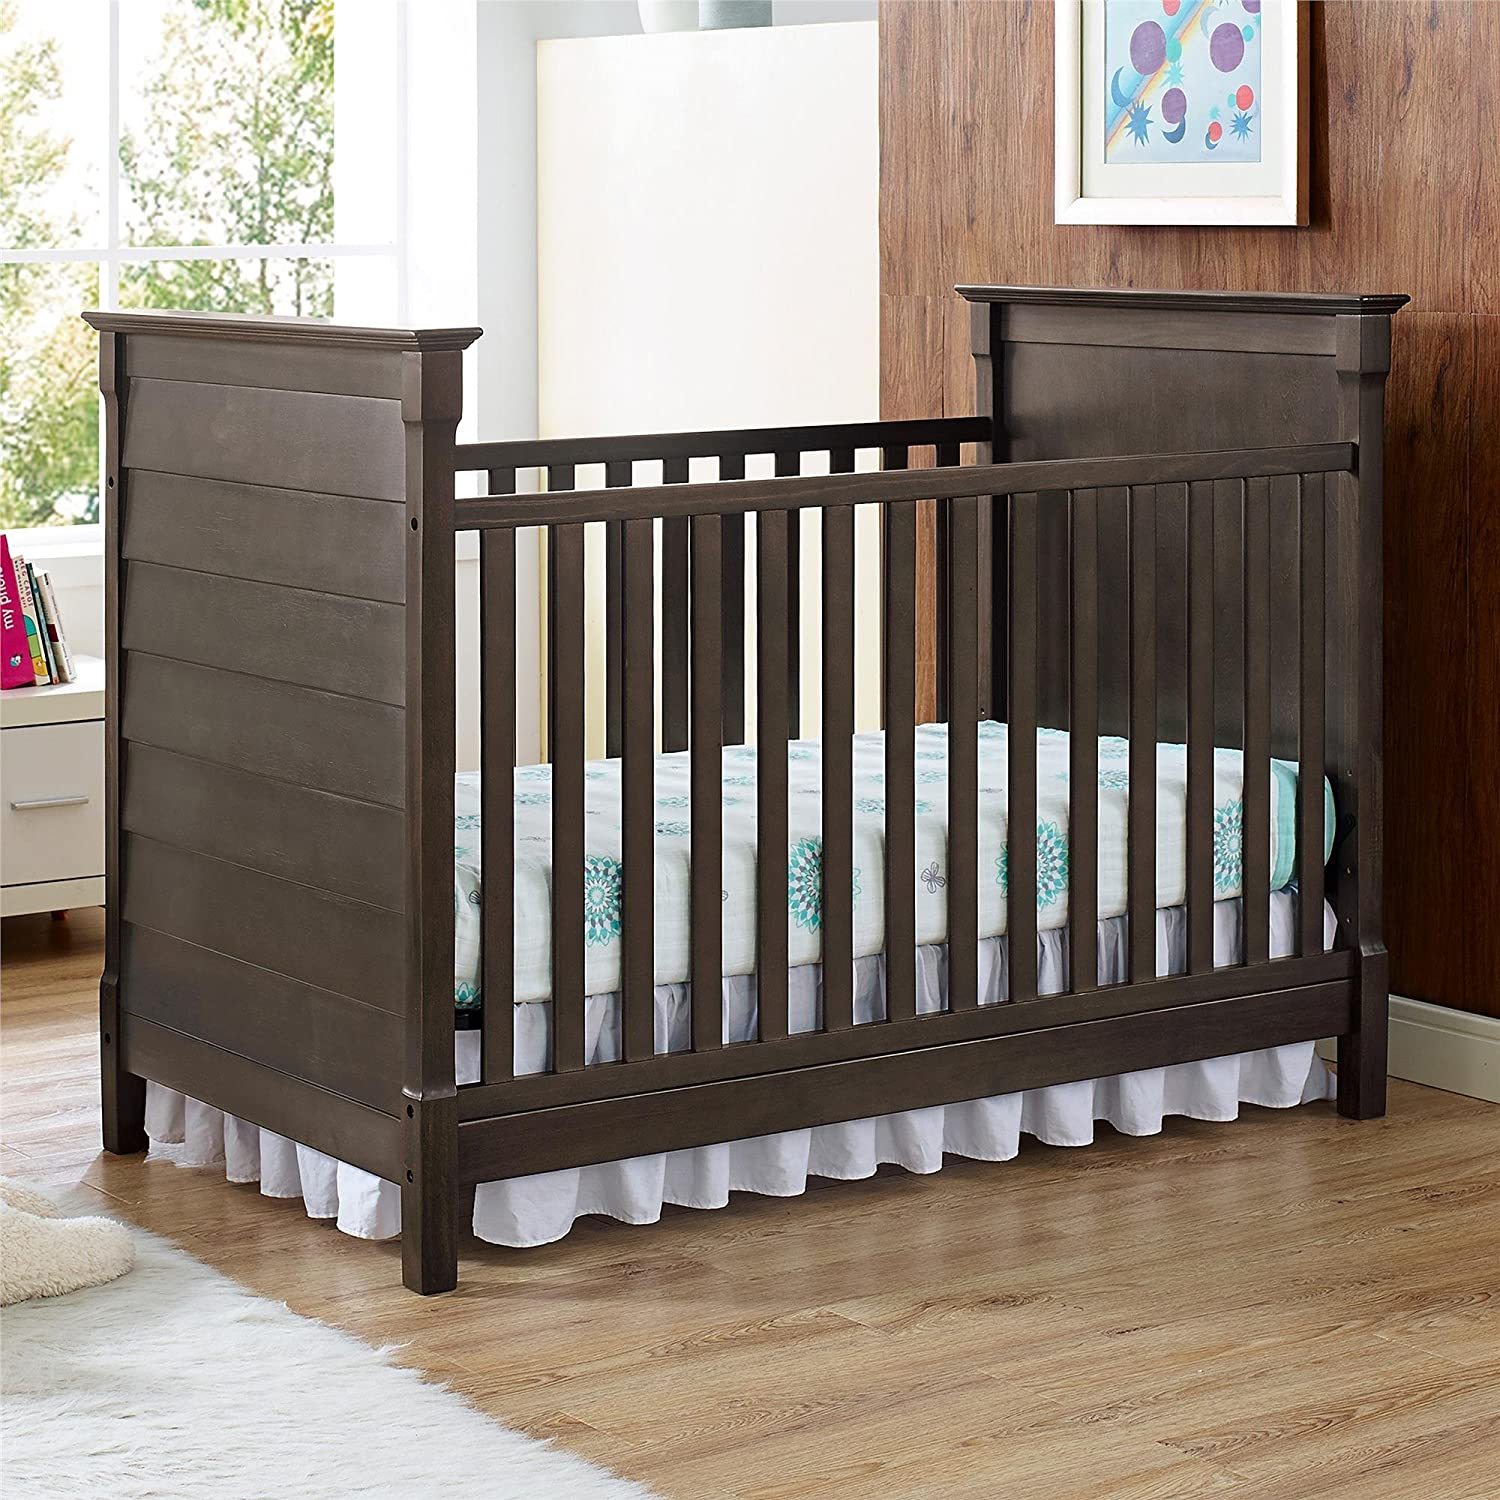 rustic crib furniture. rustic crib furniture